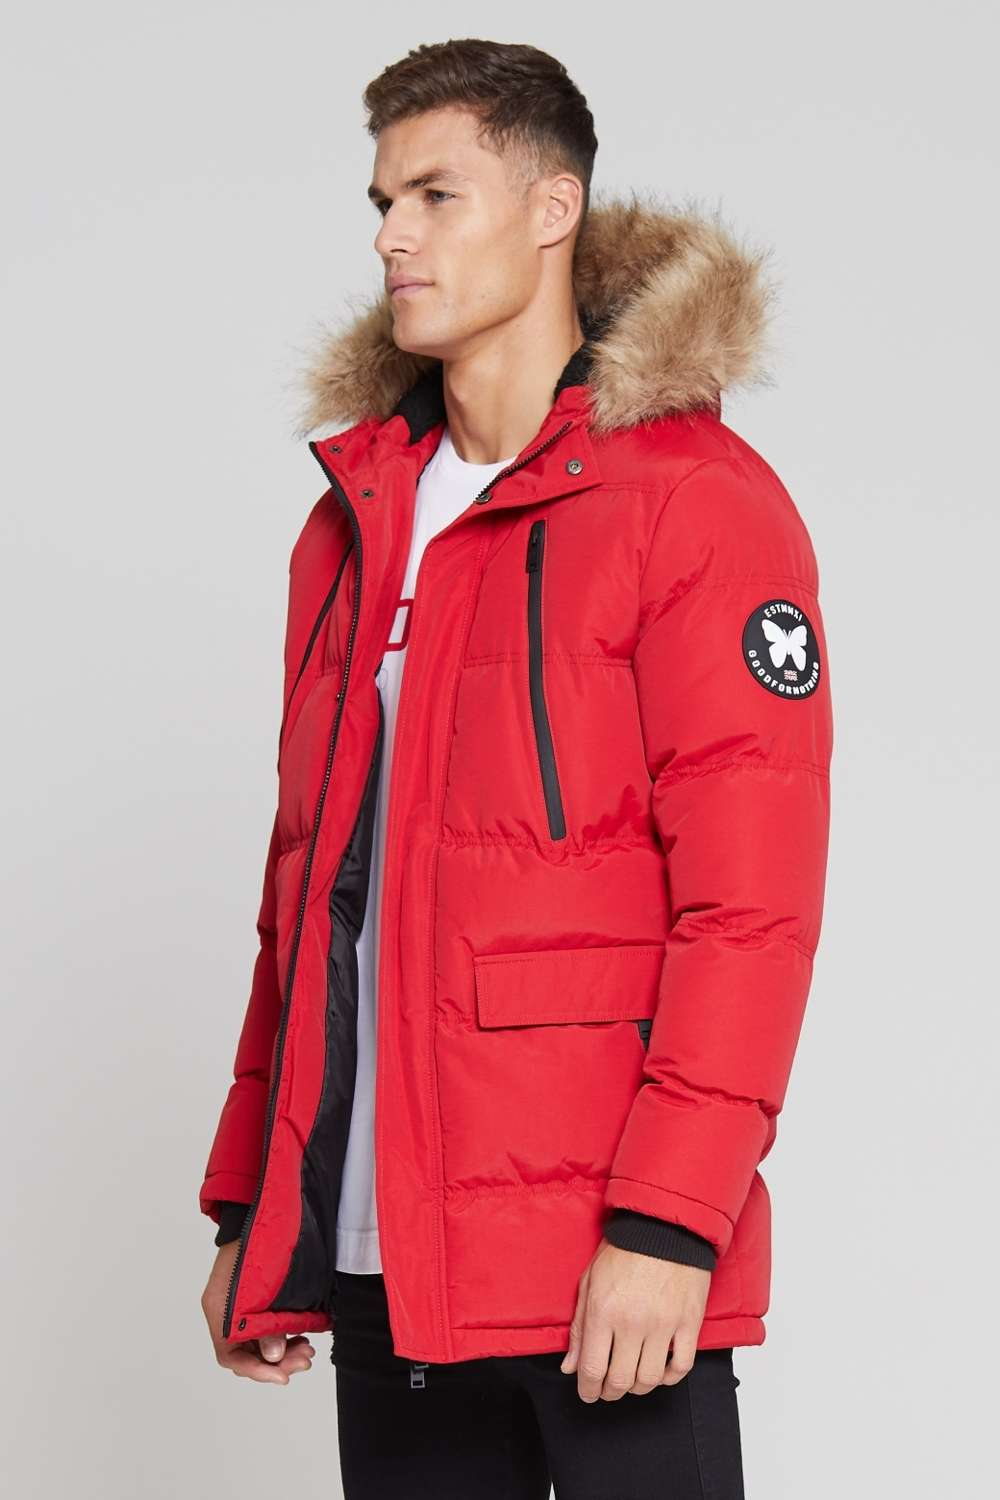 Good For Nothing Glacier Parka Jacket - Red - 2